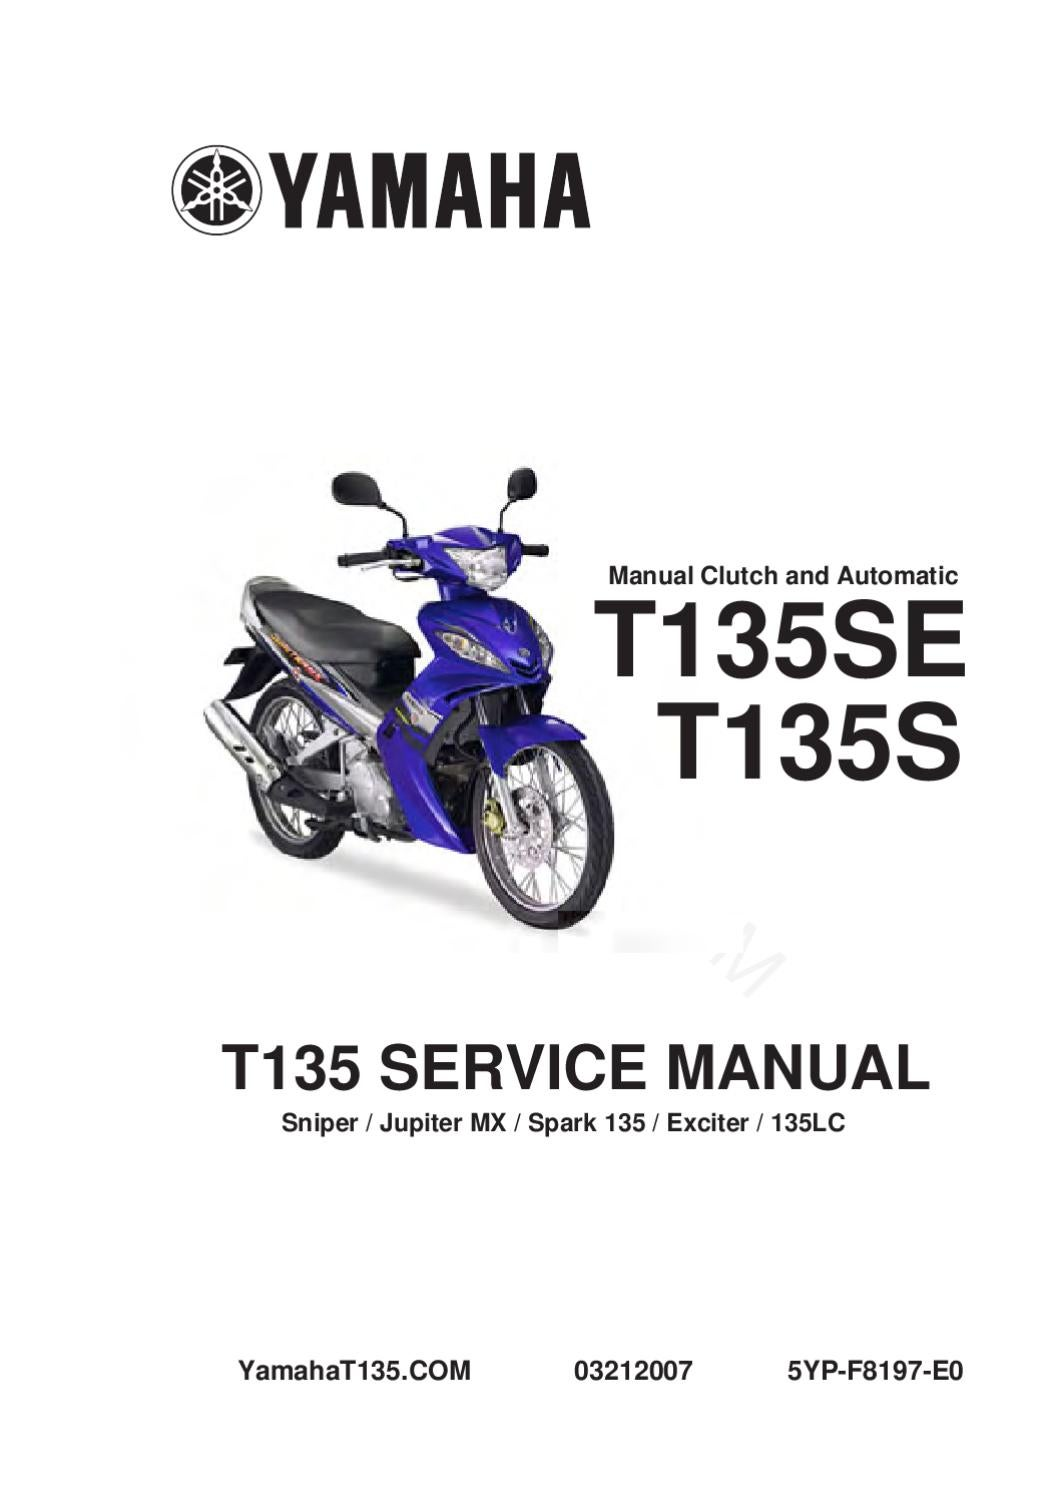 Yamaha T135 Wiring Diagram Pdf Electrical 135lc Sniper By Athanasios Vrakas Issuu 89 Jeep Yj